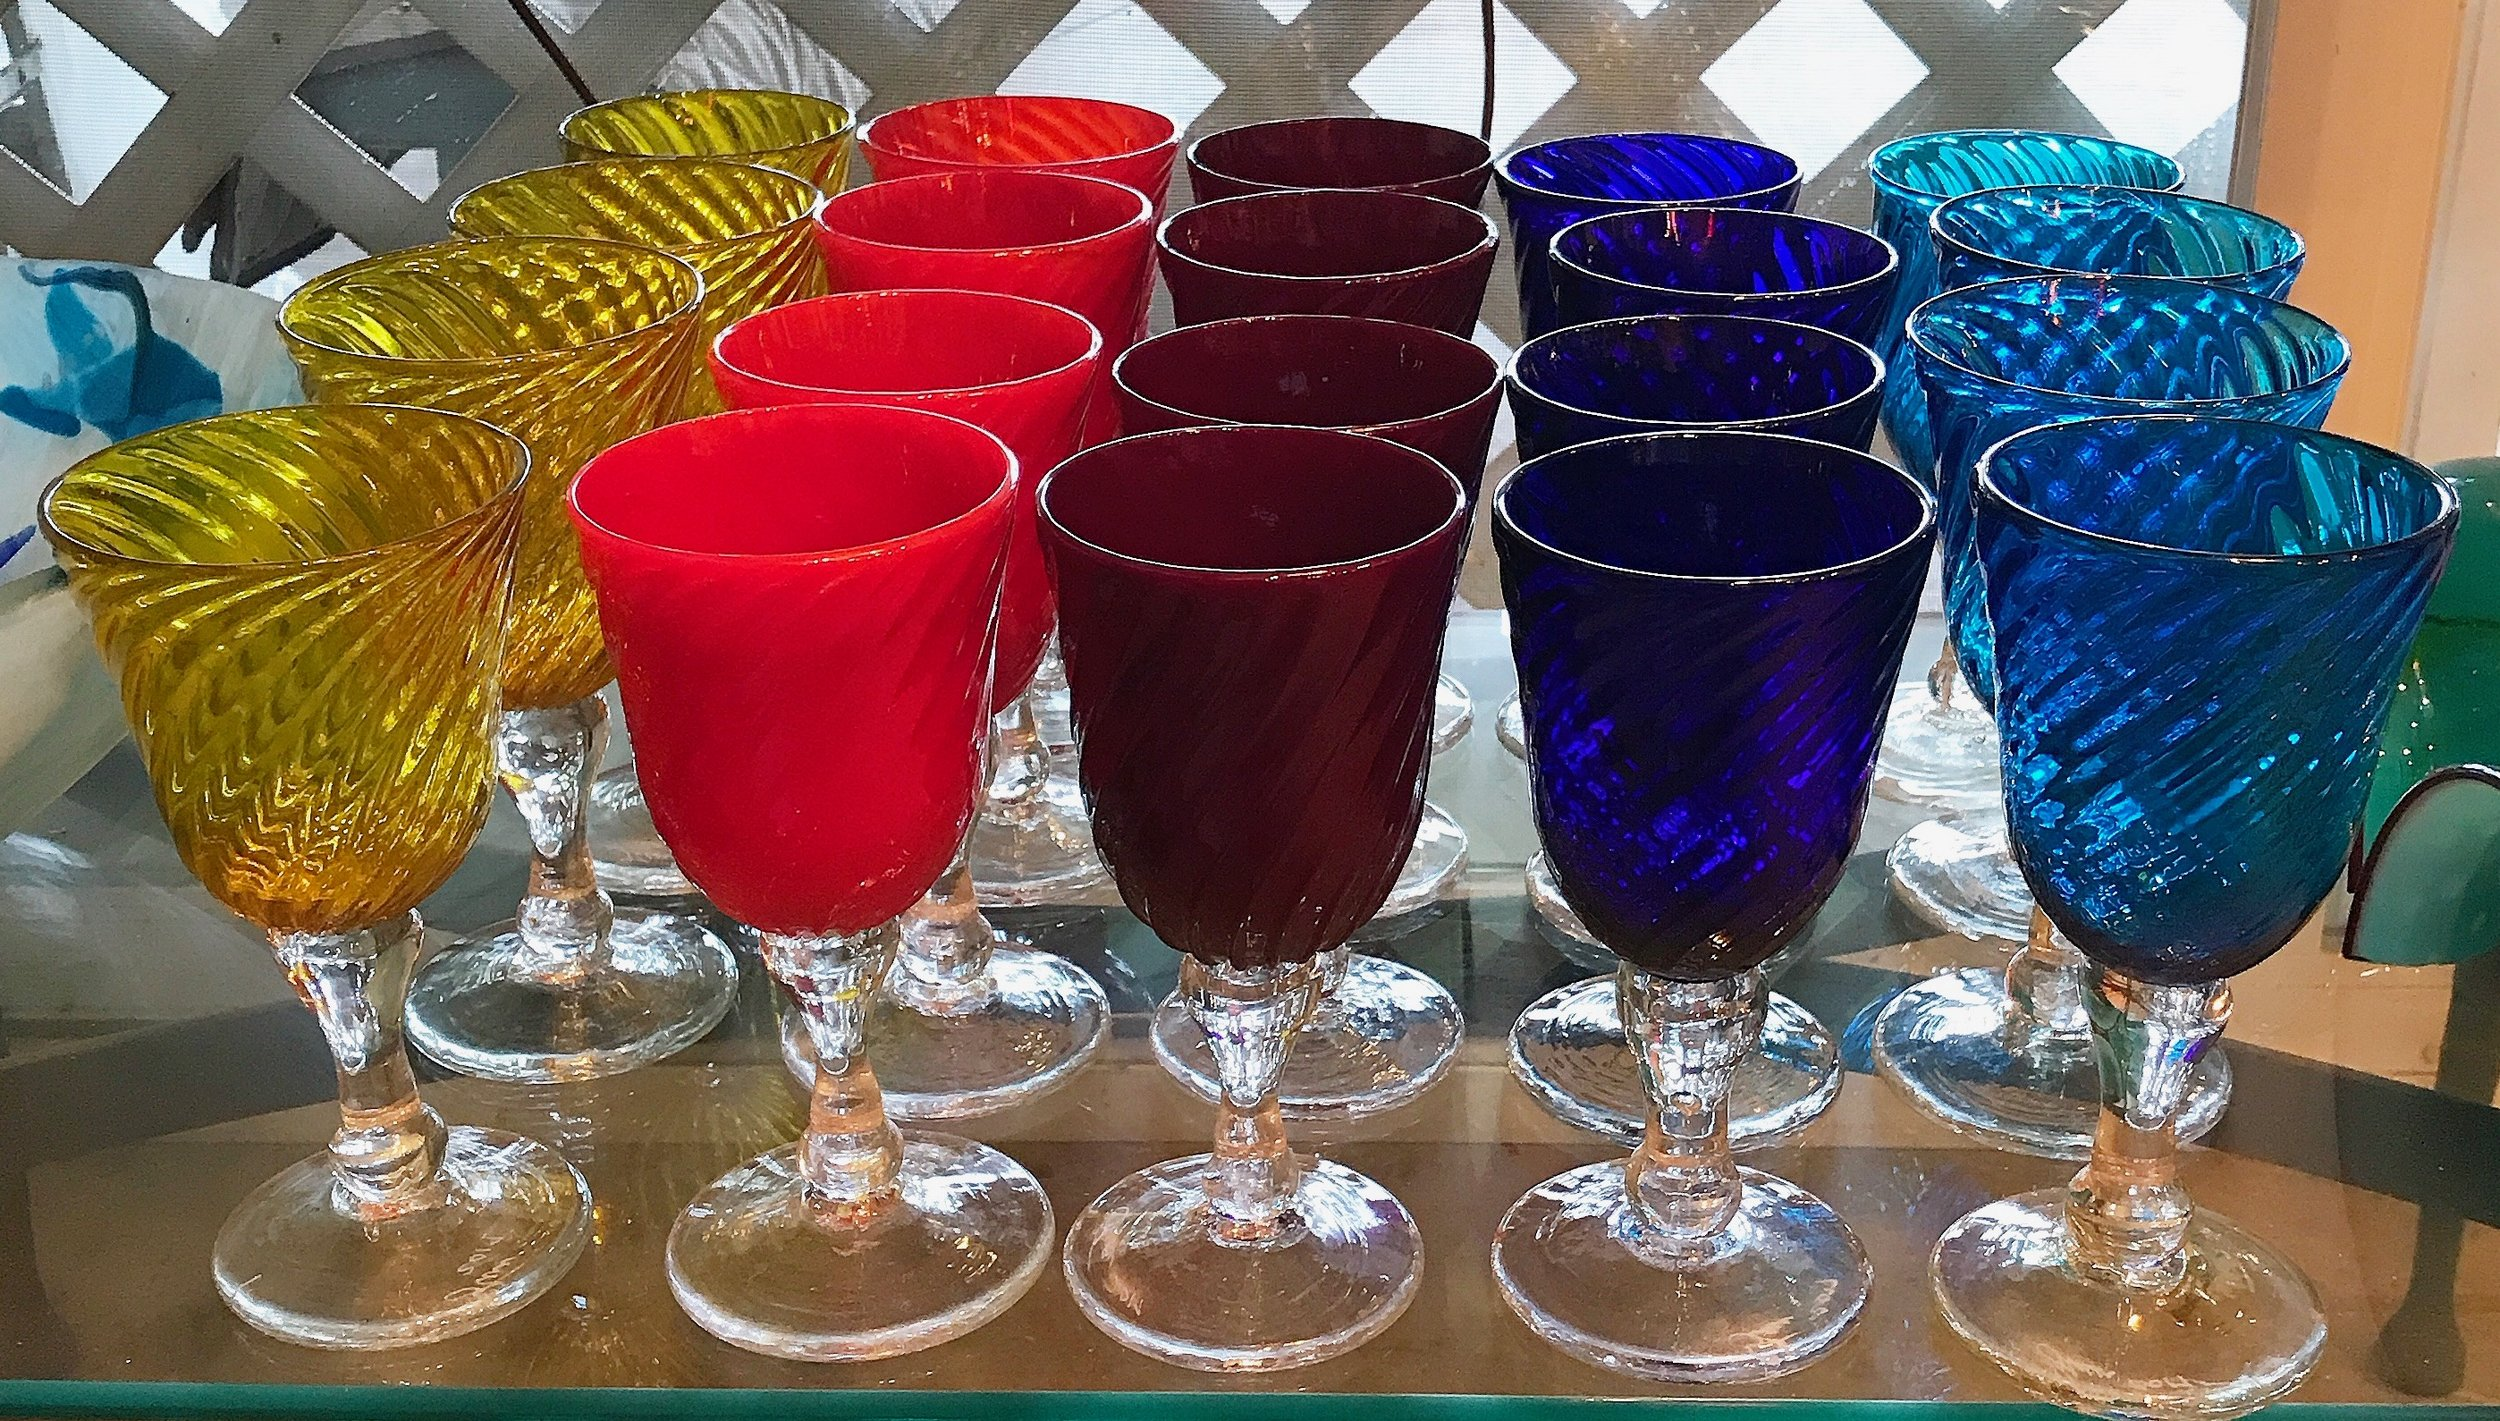 practice goblets.  Lino says one must be an accomplished goblet maker to be a master glass man.